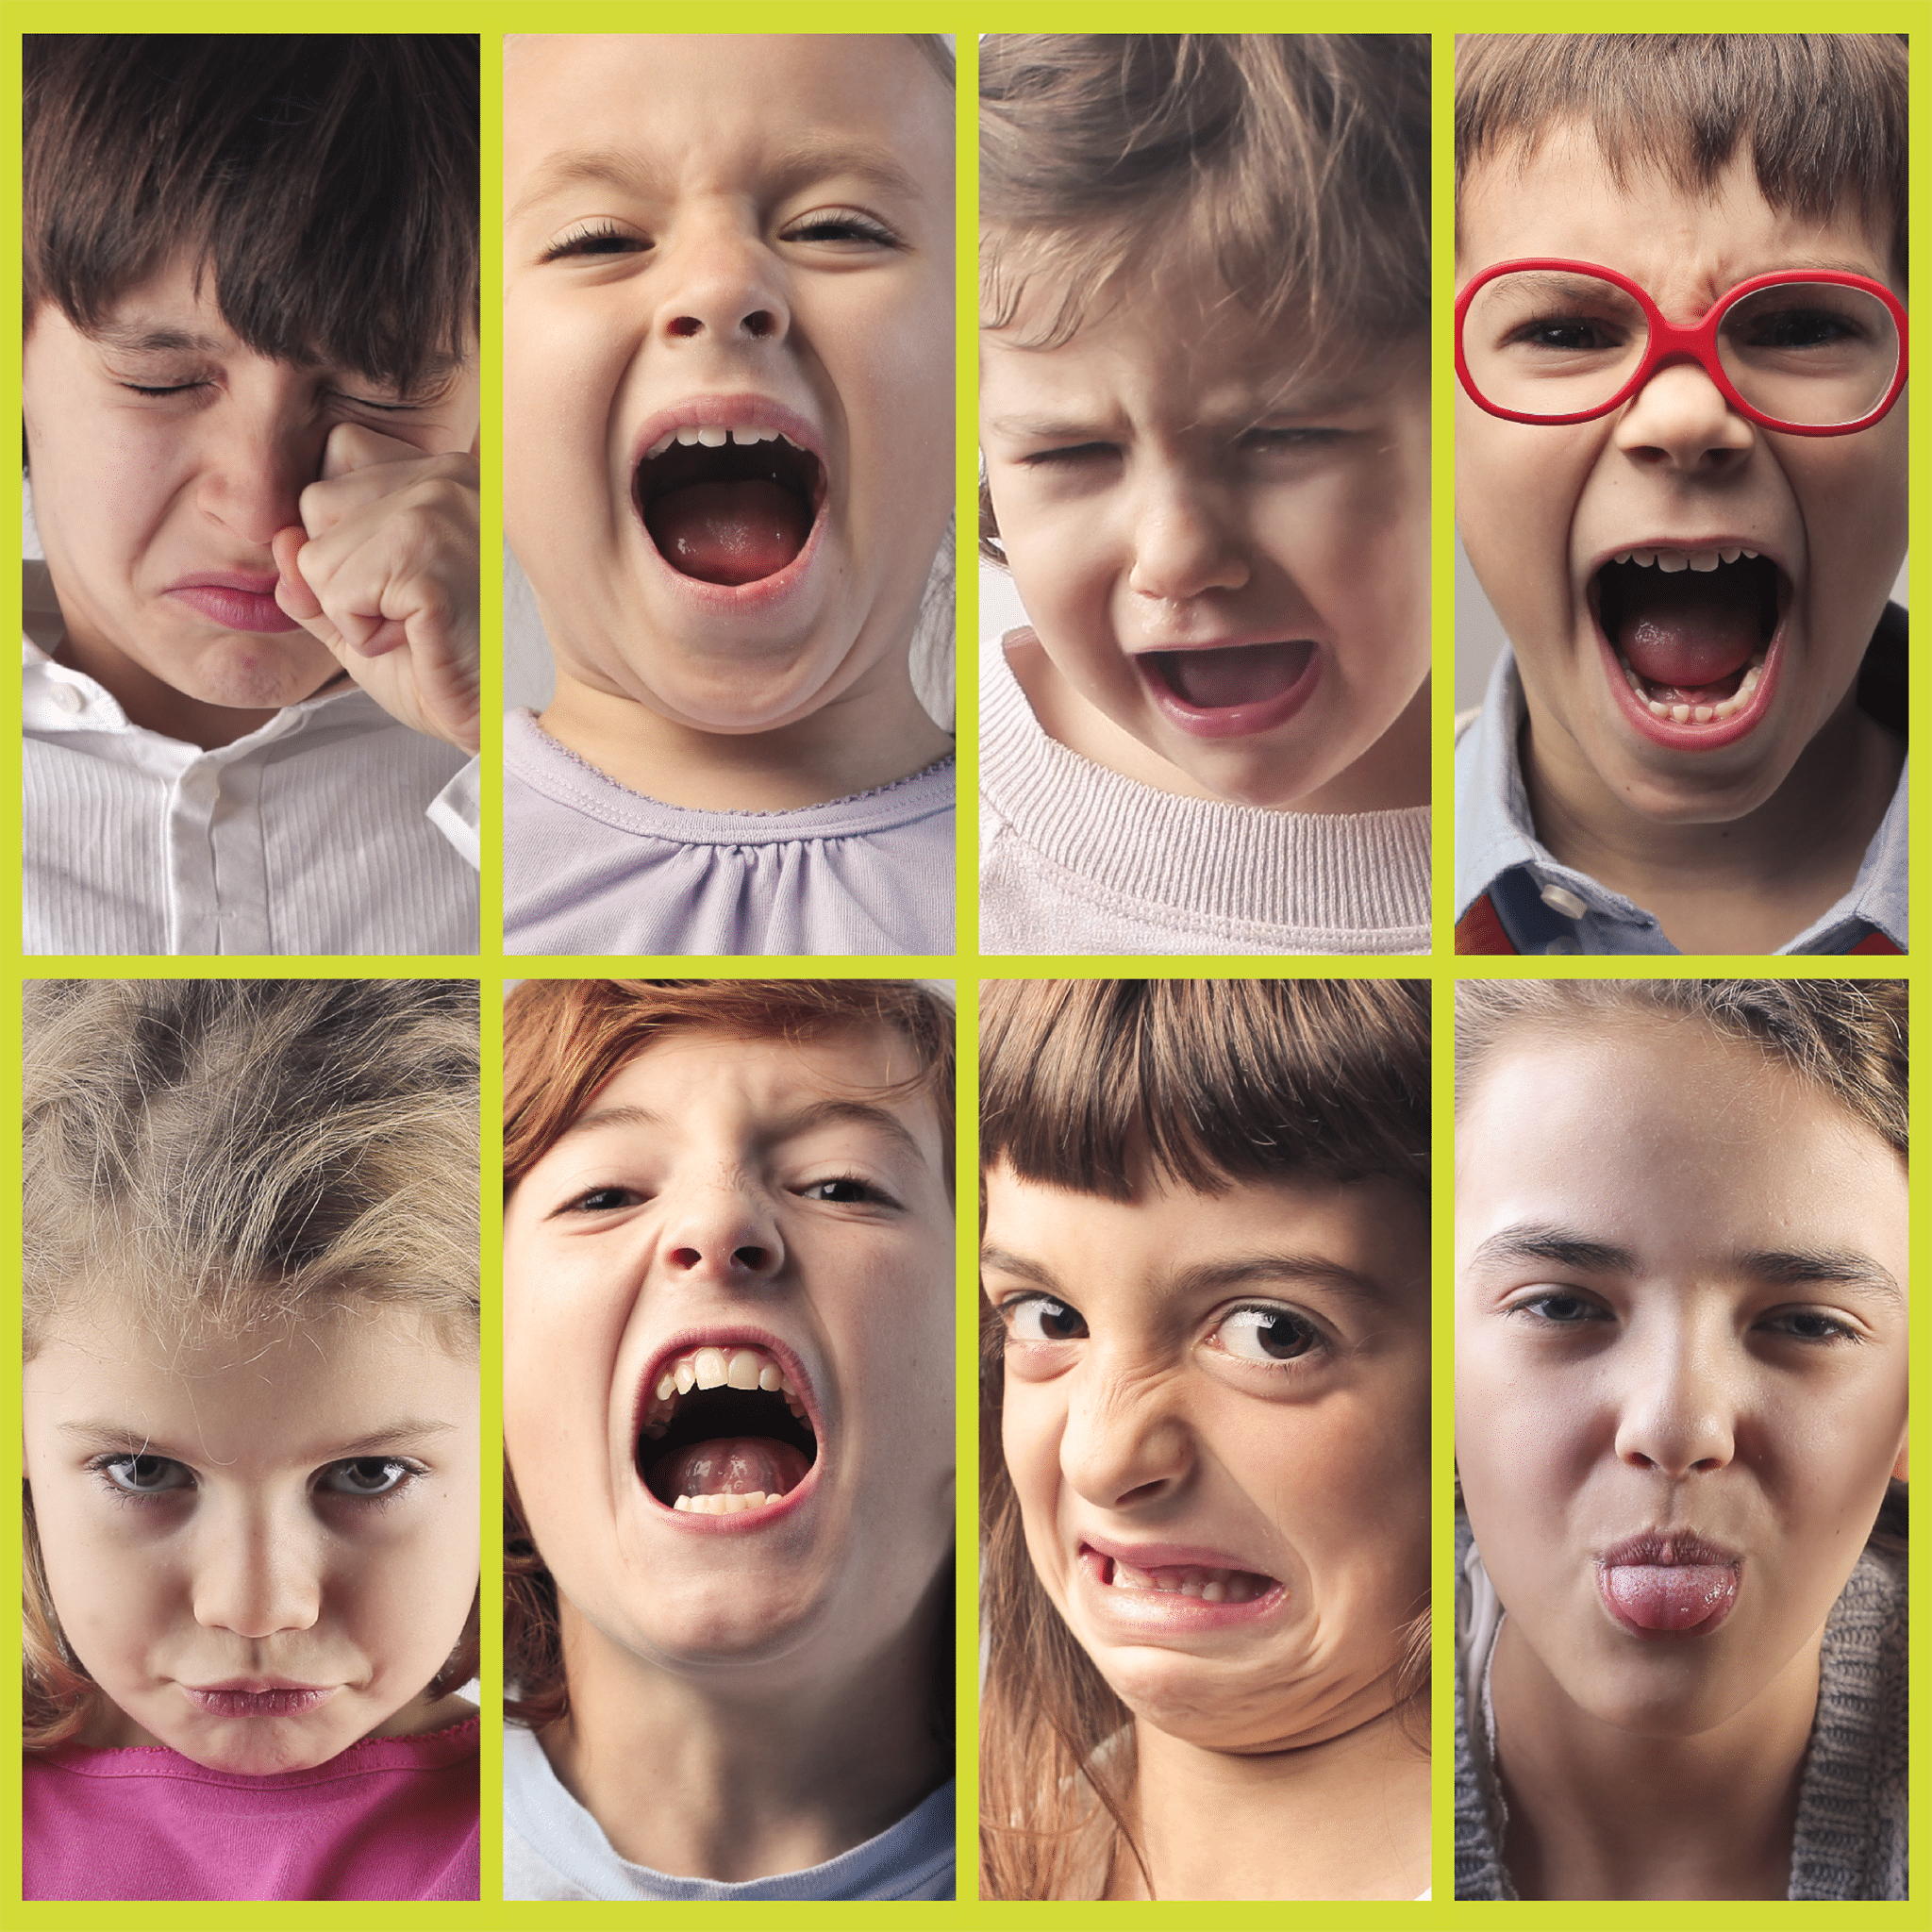 8 pictures of children showing different moods